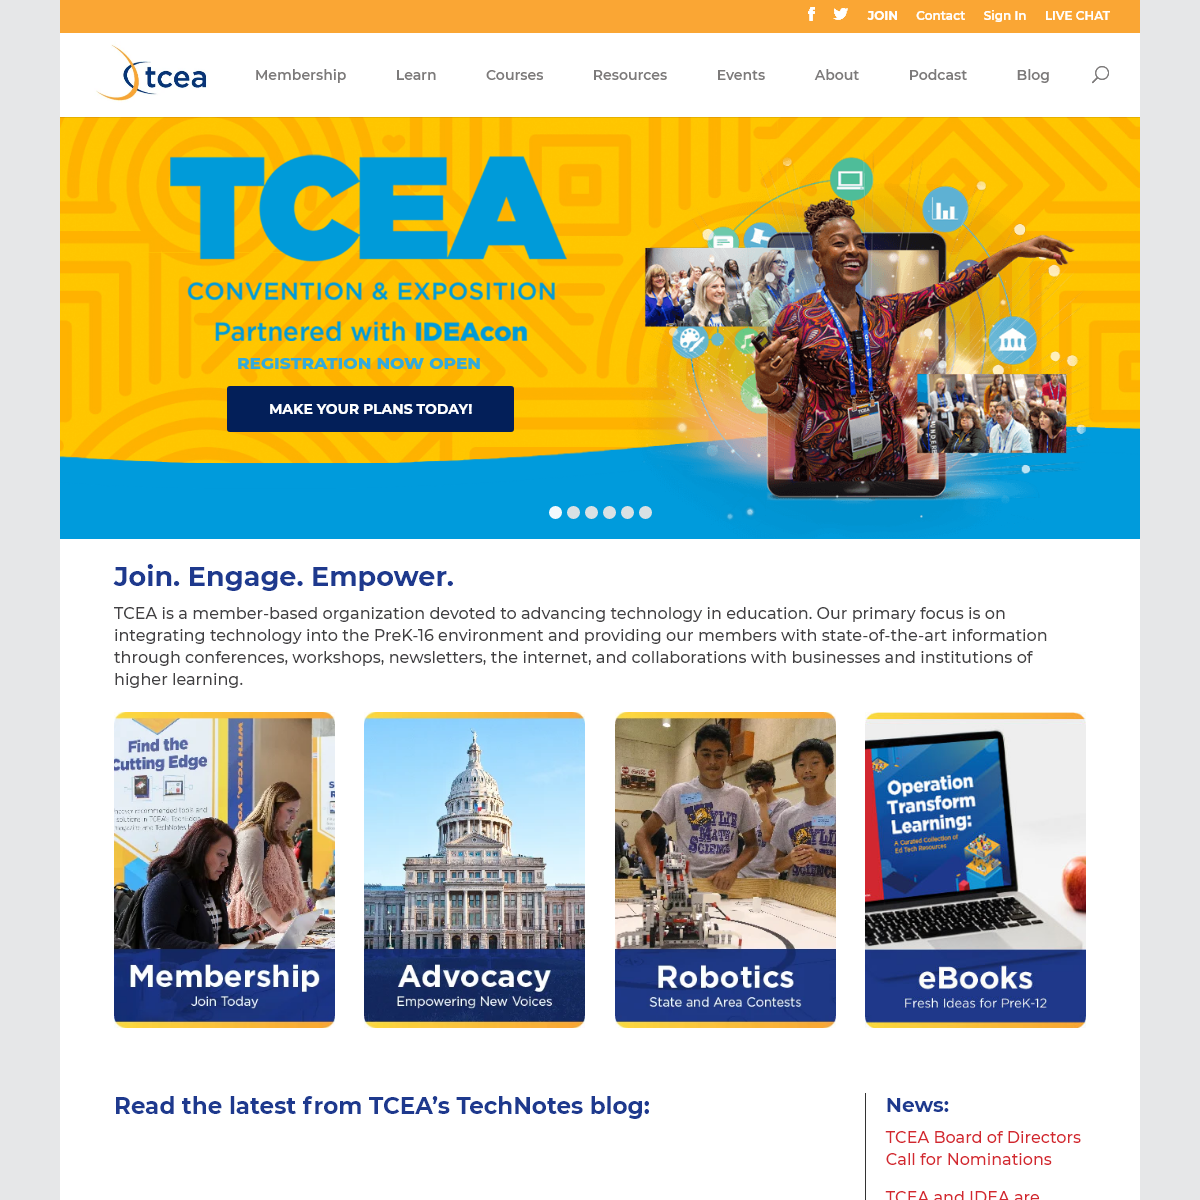 TCEA Helps Educators Advance Teaching and Learning Using Technology